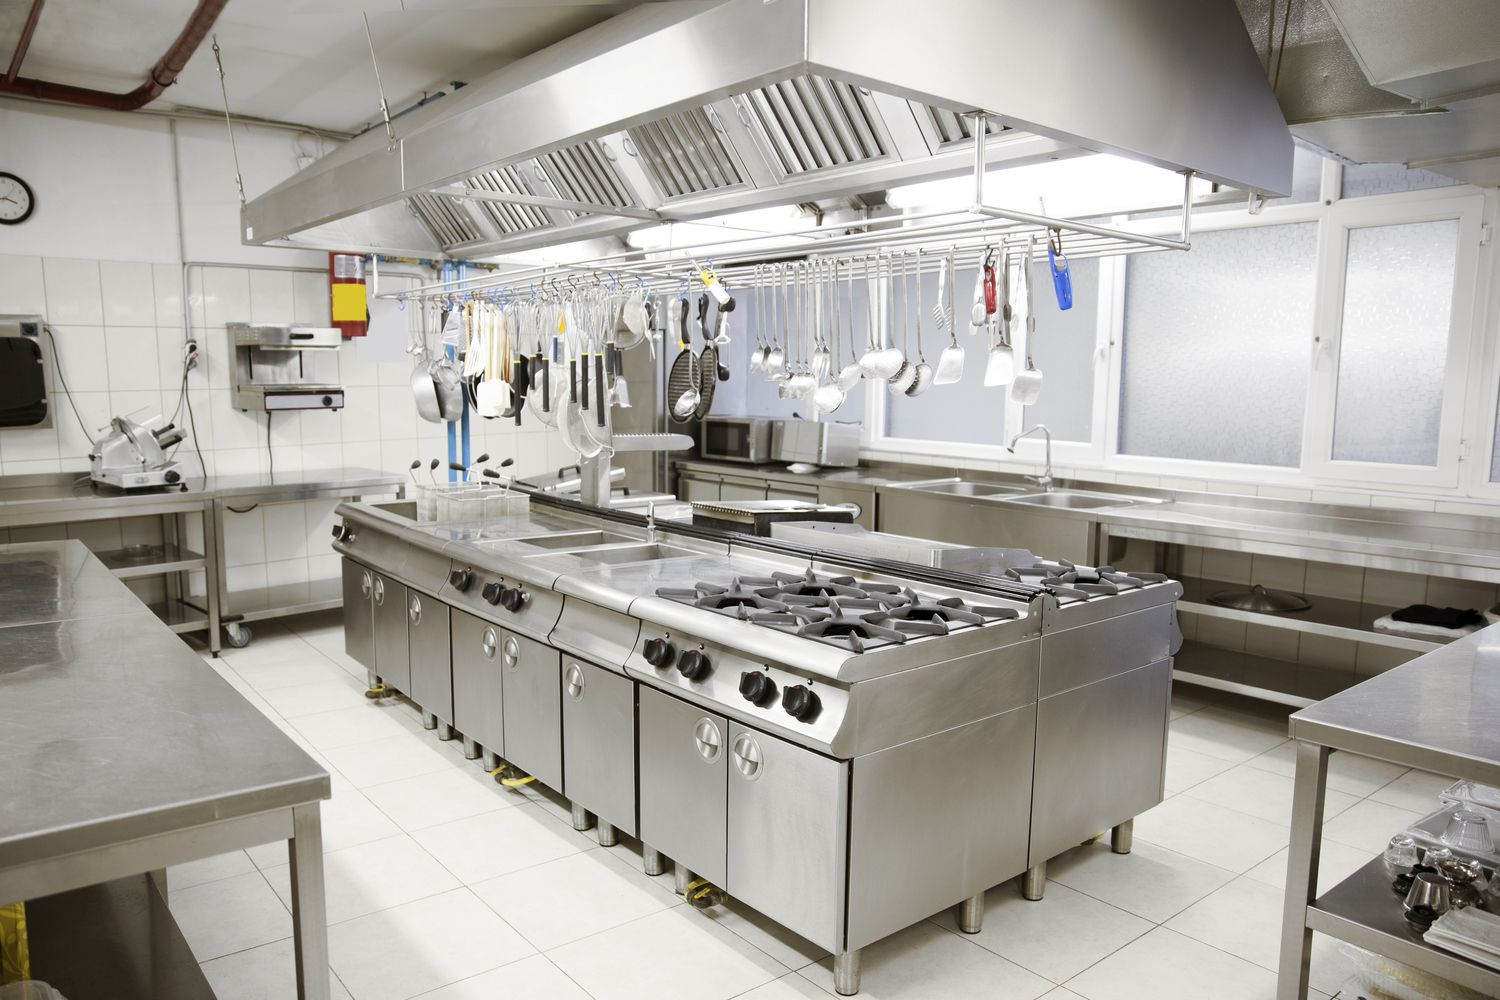 Chinese Restaurant Kitchen Equipment commercial kitchen equipment manufacturers in delhi, commercial